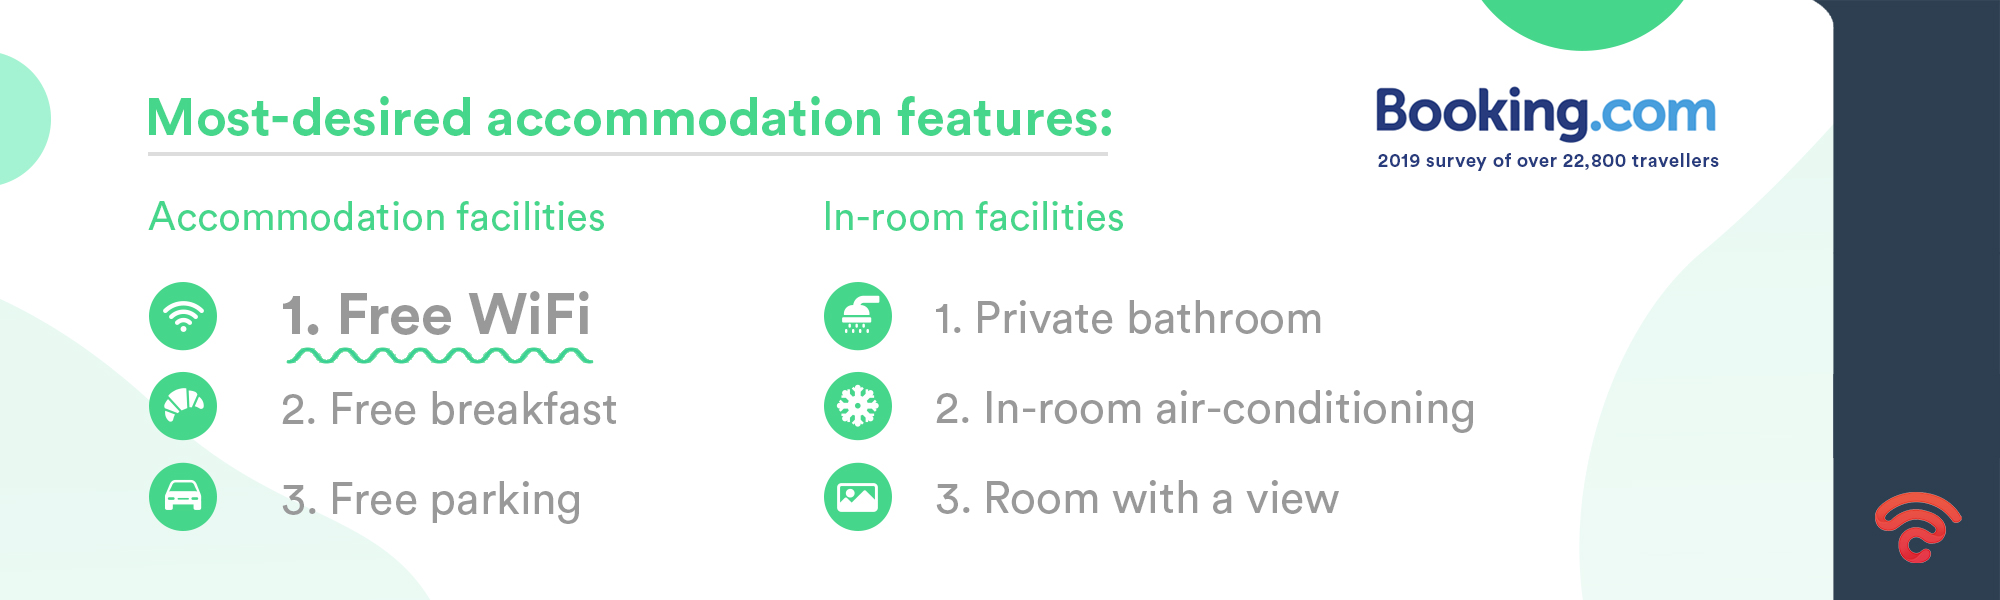 The most desired accommodation feature